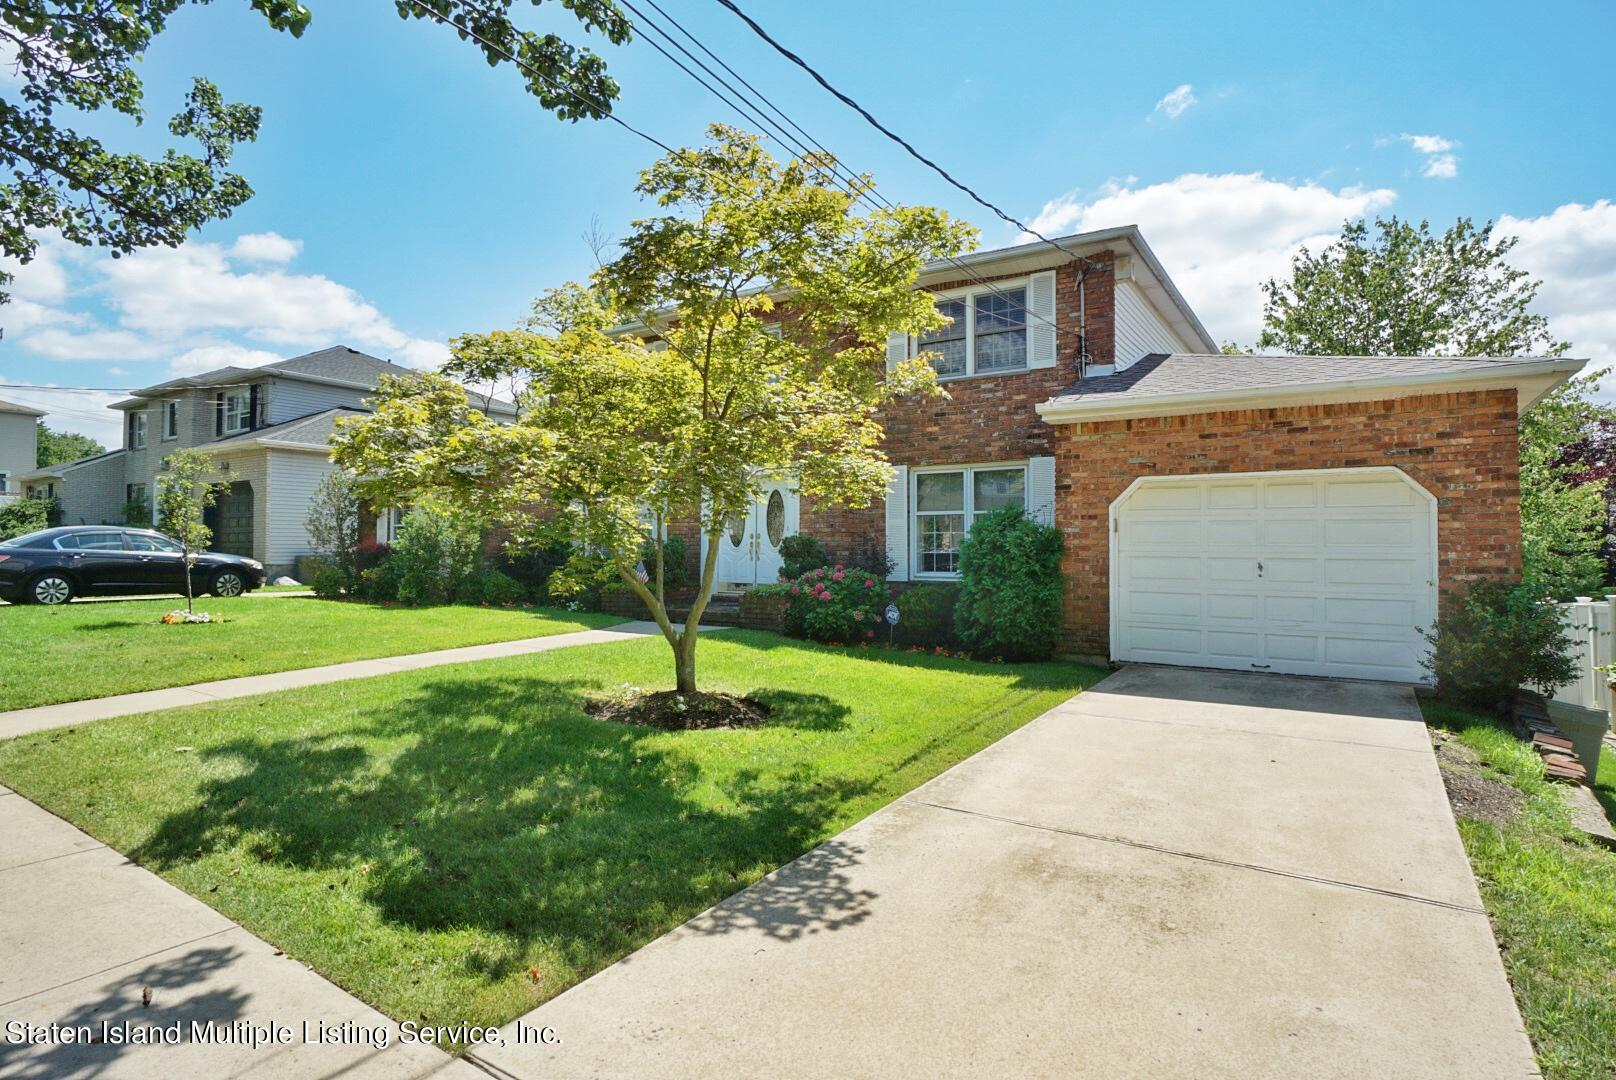 Two Family - Detached 524 Lamont Avenue  Staten Island, NY 10312, MLS-1148319-3